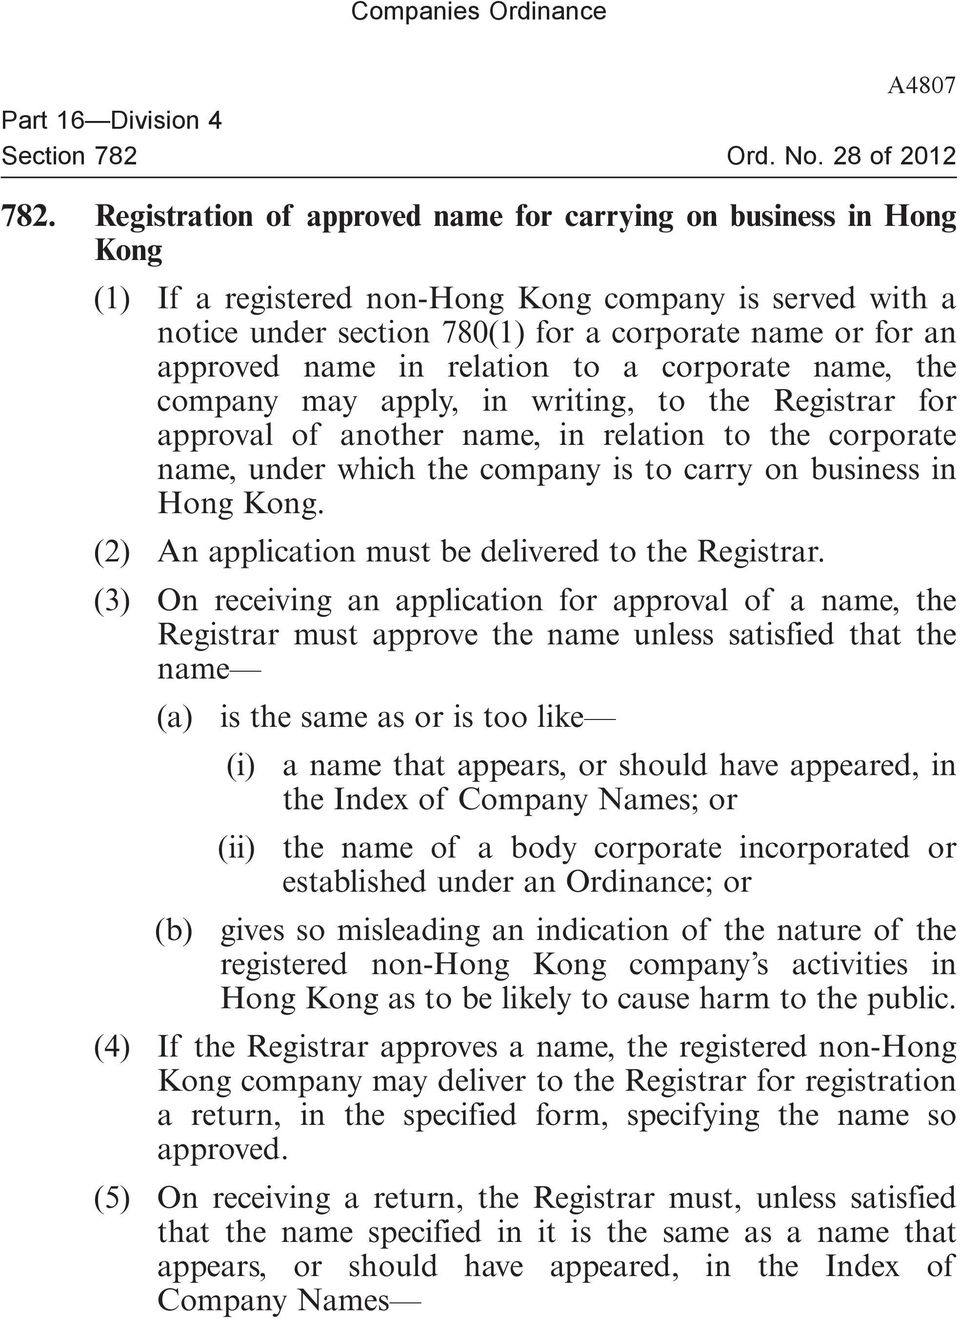 in relation to a corporate name, the company may apply, in writing, to the Registrar for approval of another name, in relation to the corporate name, under which the company is to carry on business